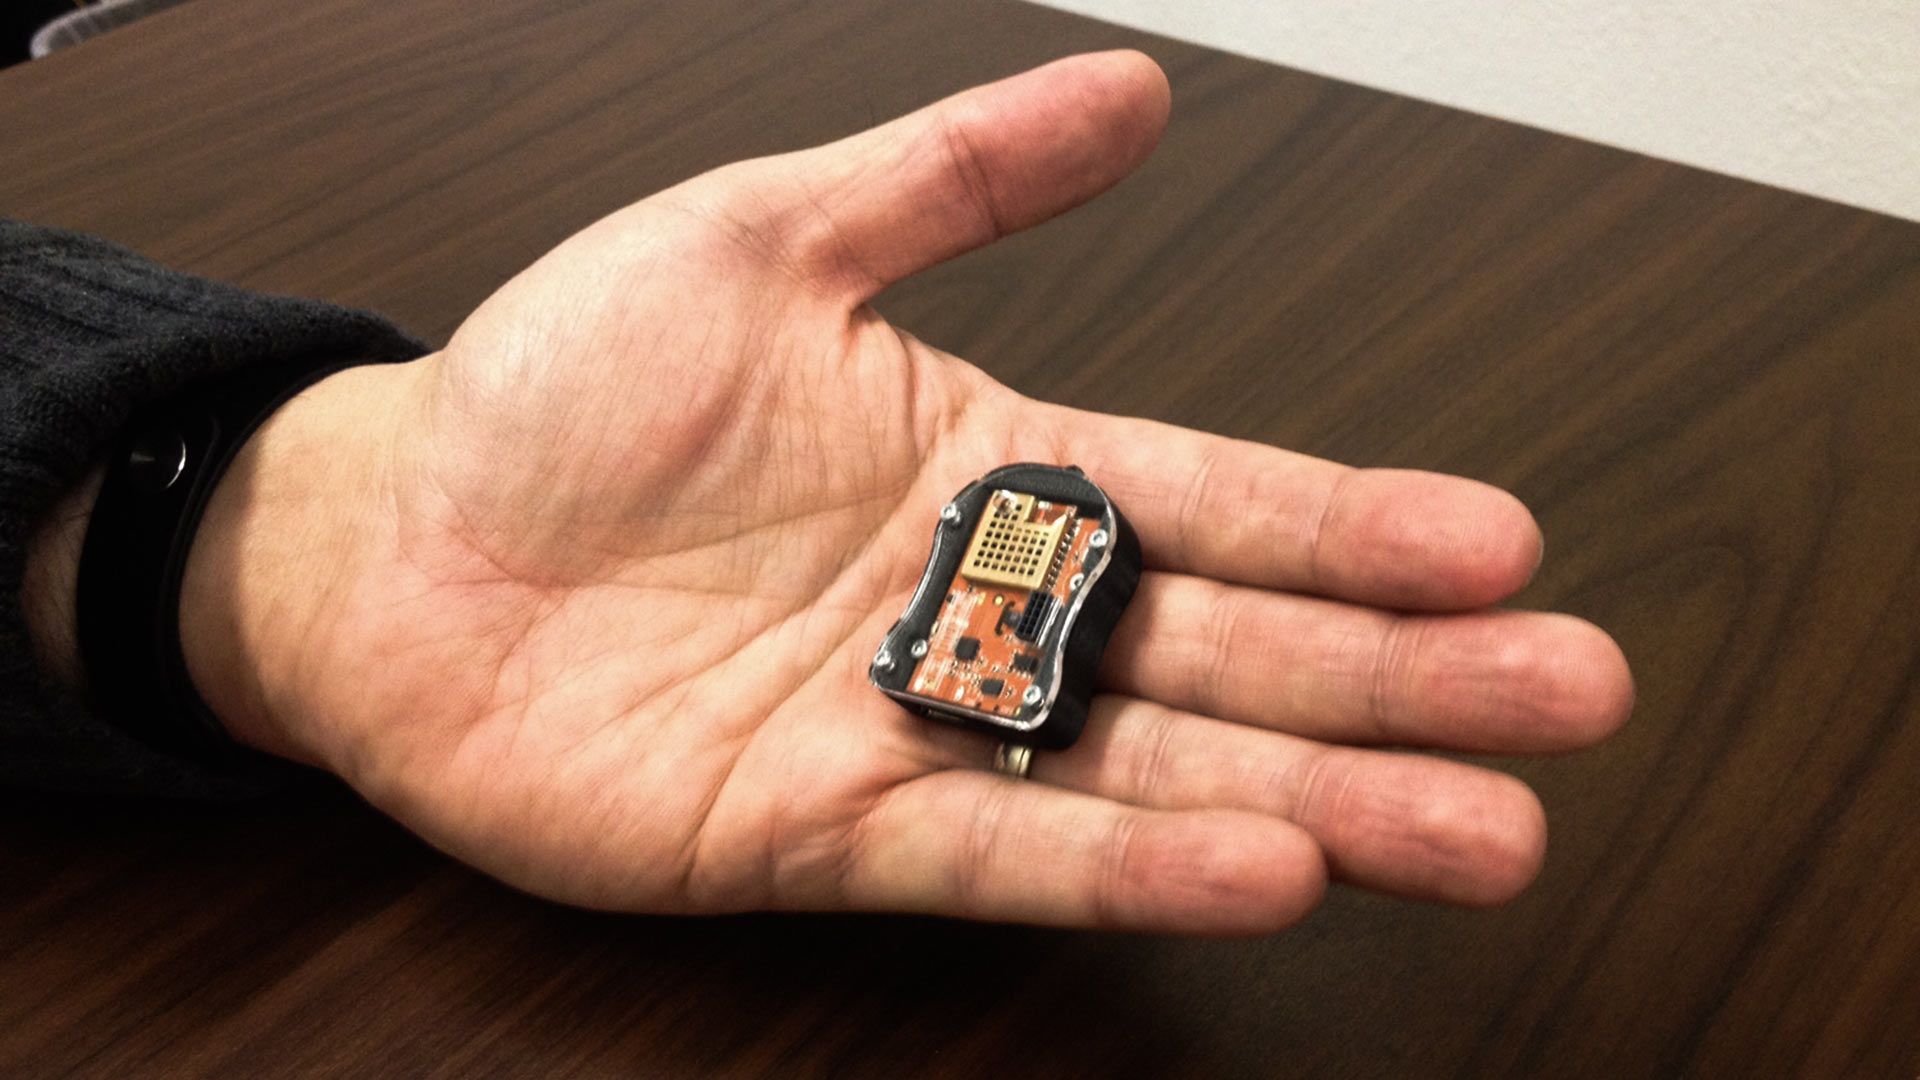 University of Arizona mining engineering professor Moe Momayez holds a sensor developed to warn miners and other workers of hazardous conditions.